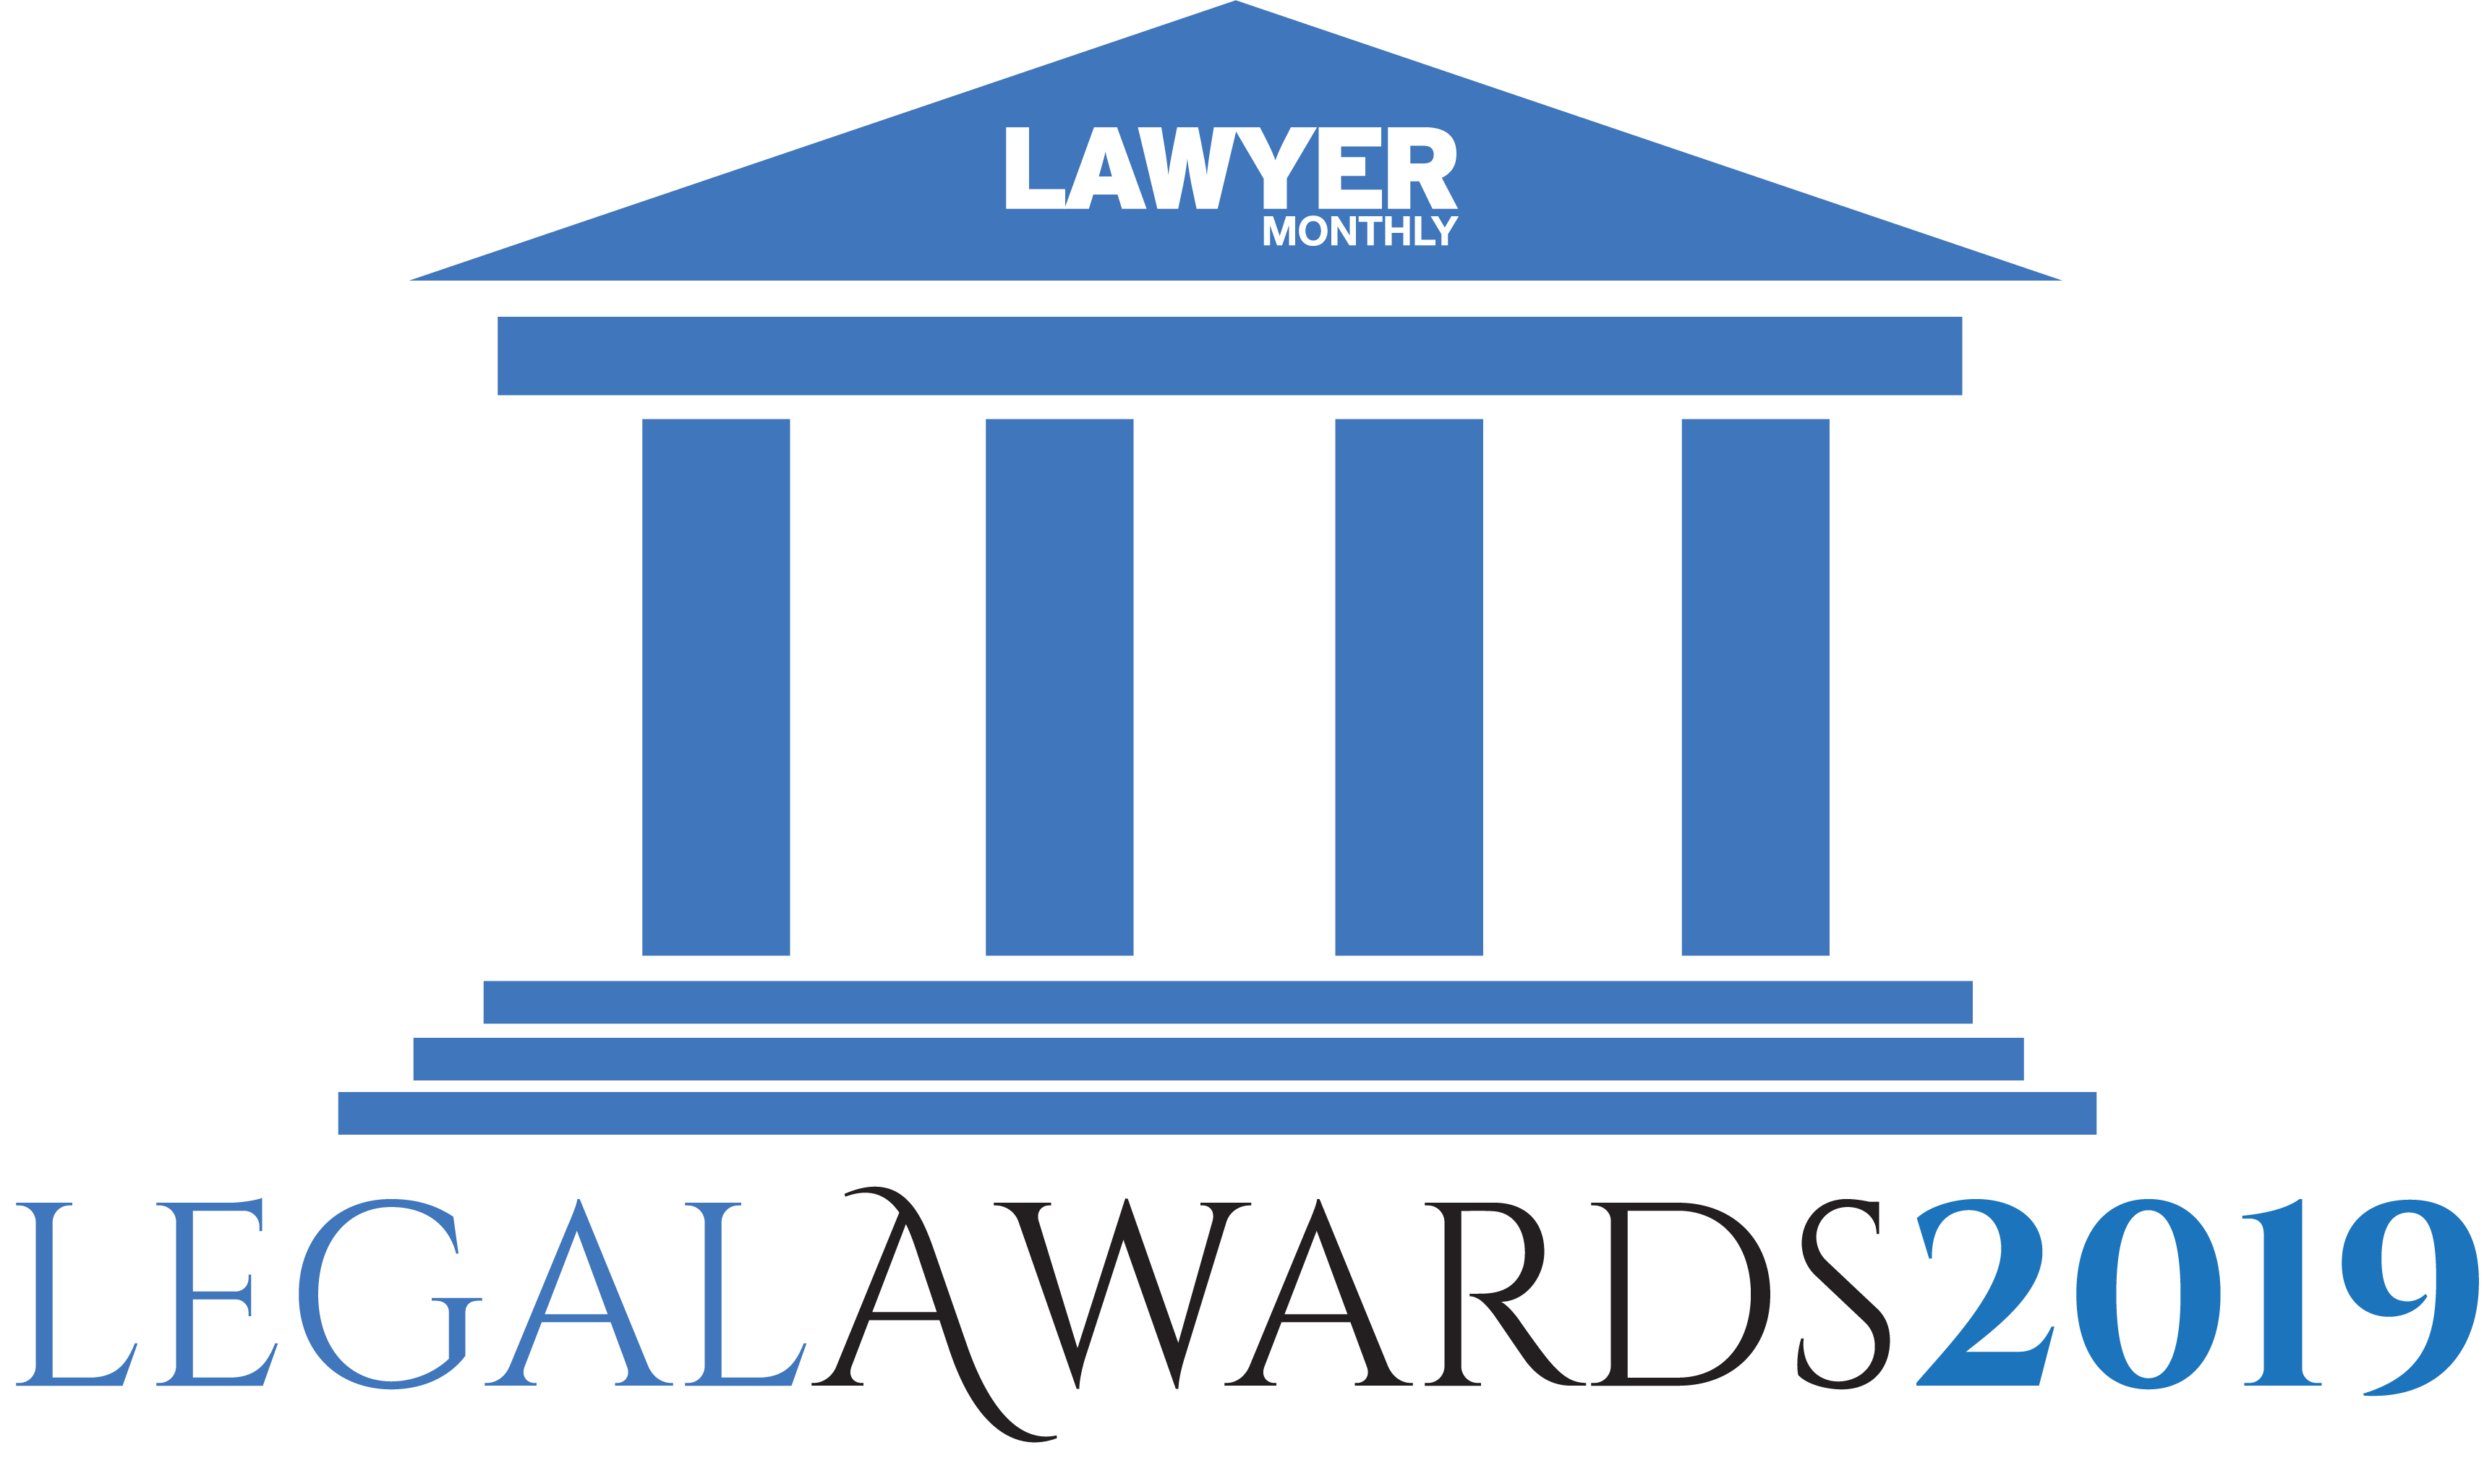 Lawyer Monthly Award